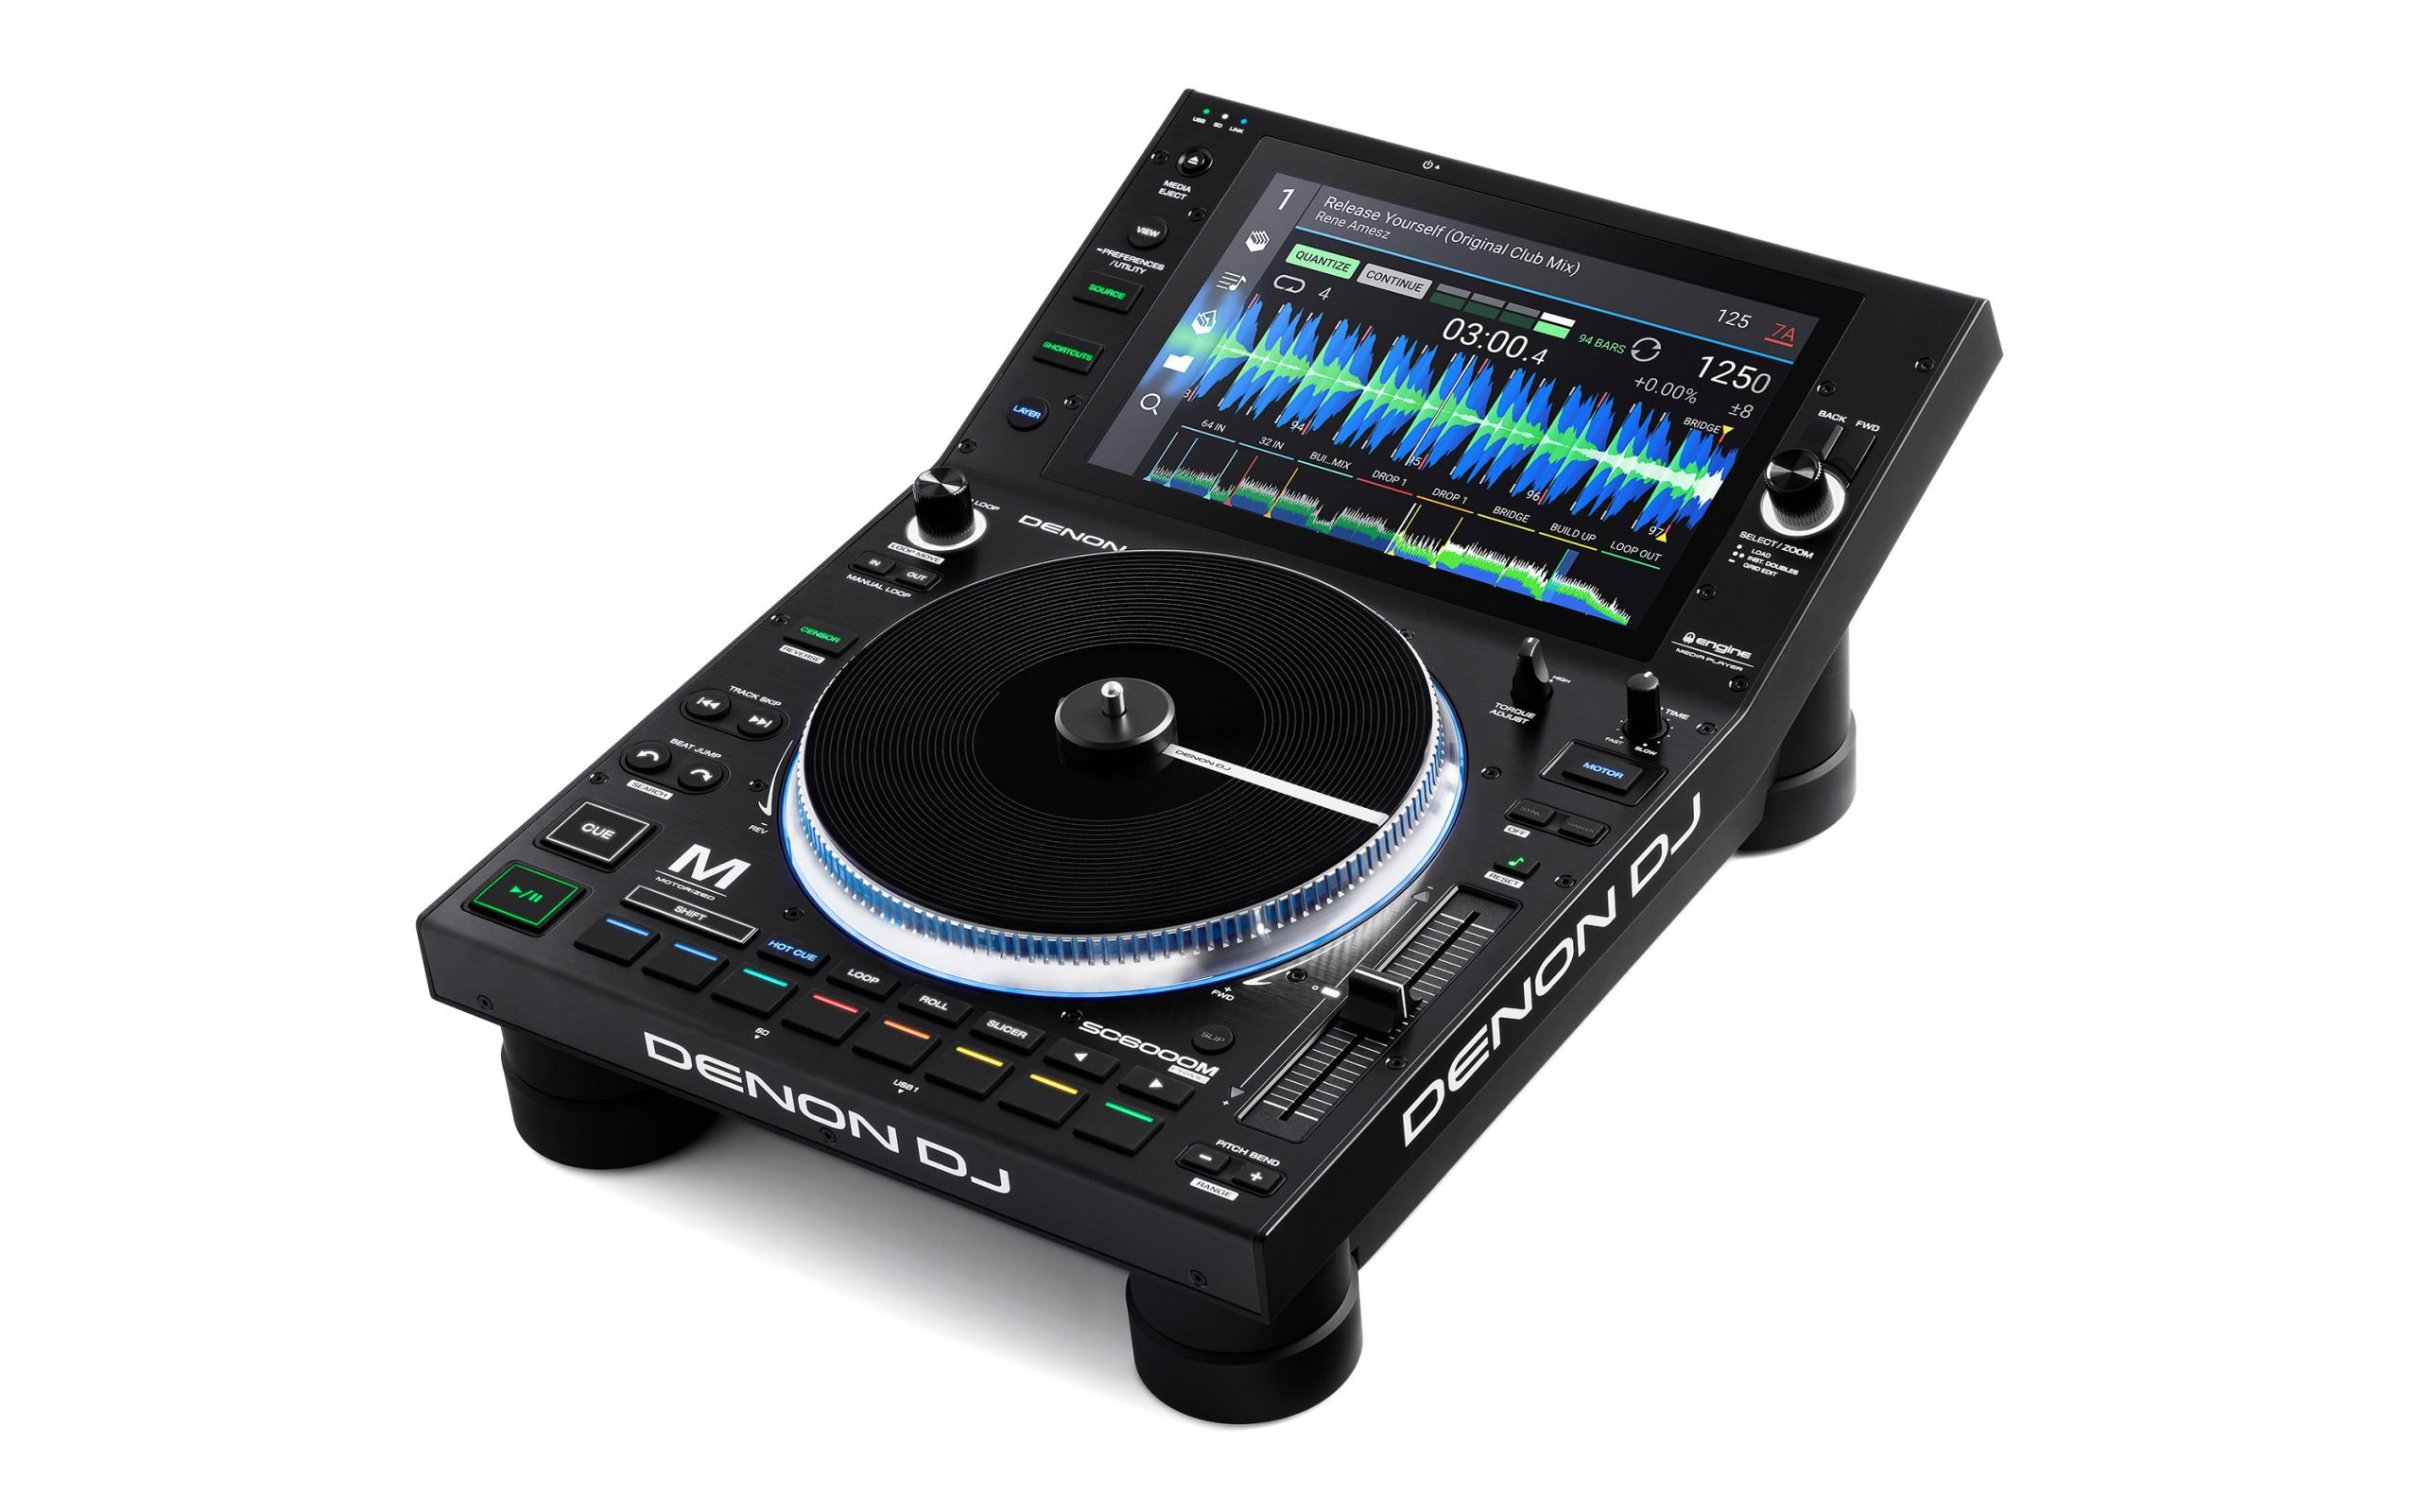 Denon DJ turnt up to 11 — the SC6000, SC6000M, and X1850 Prime 3